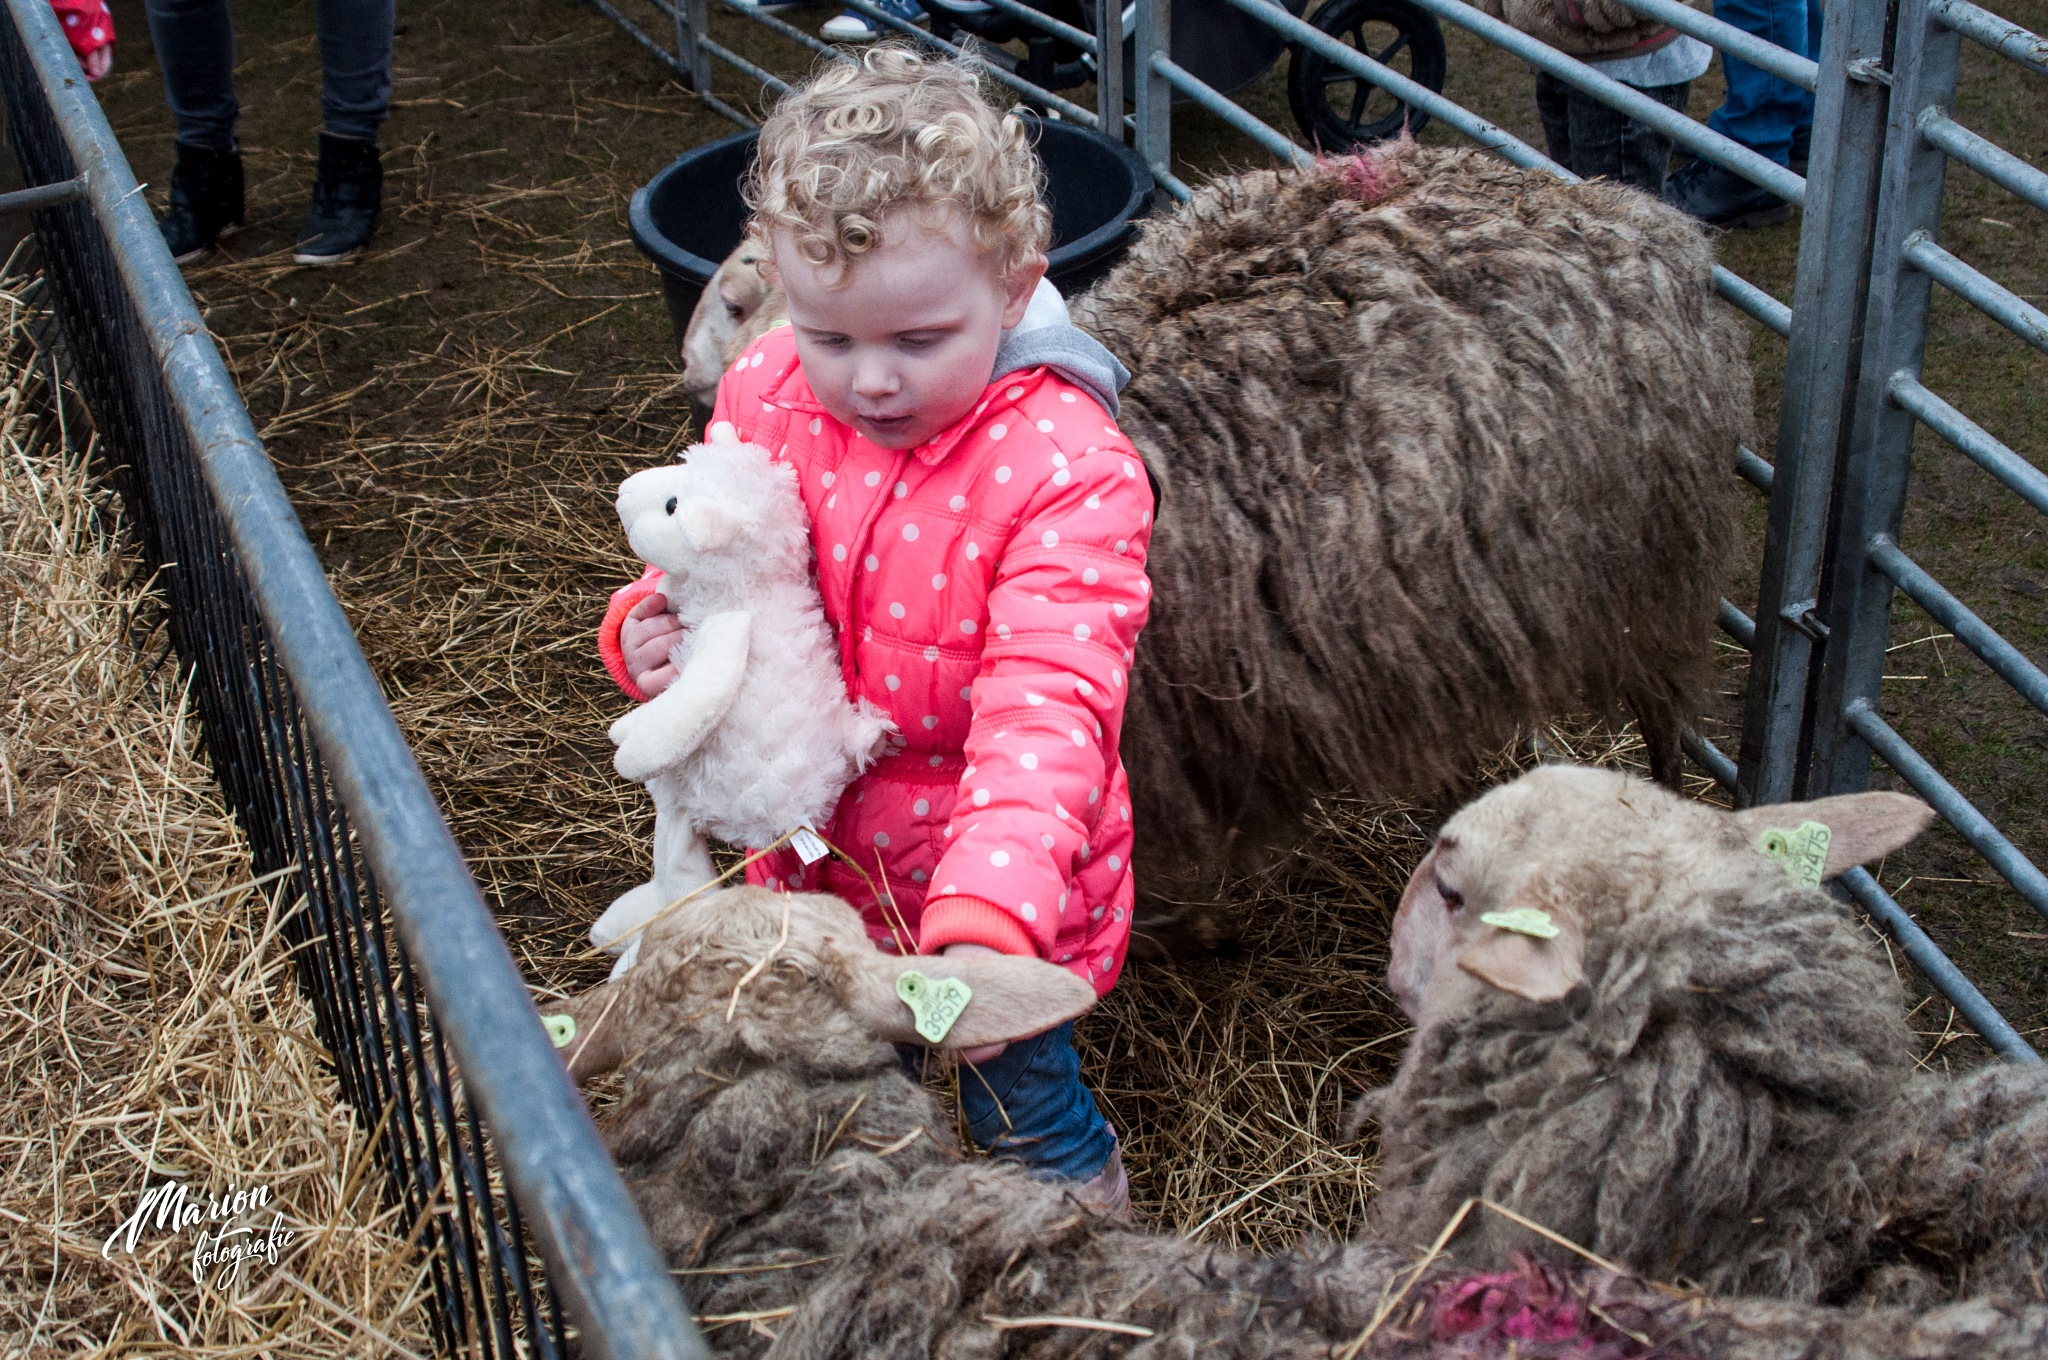 Cuddling and petting the sheep by Marion Verhaaf